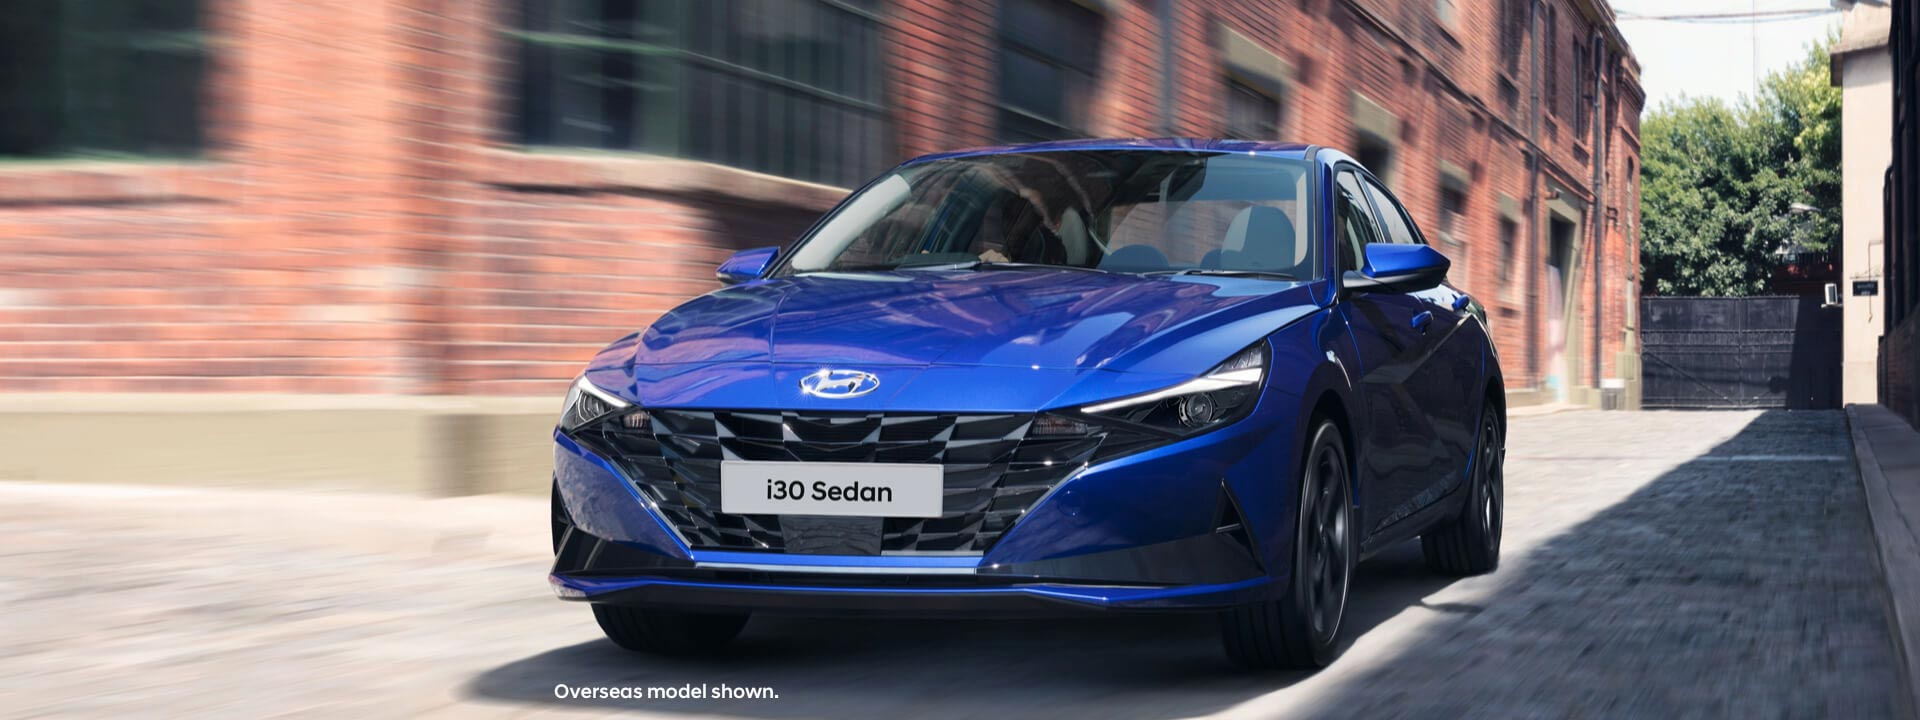 All New Hyundai i30 Sedan